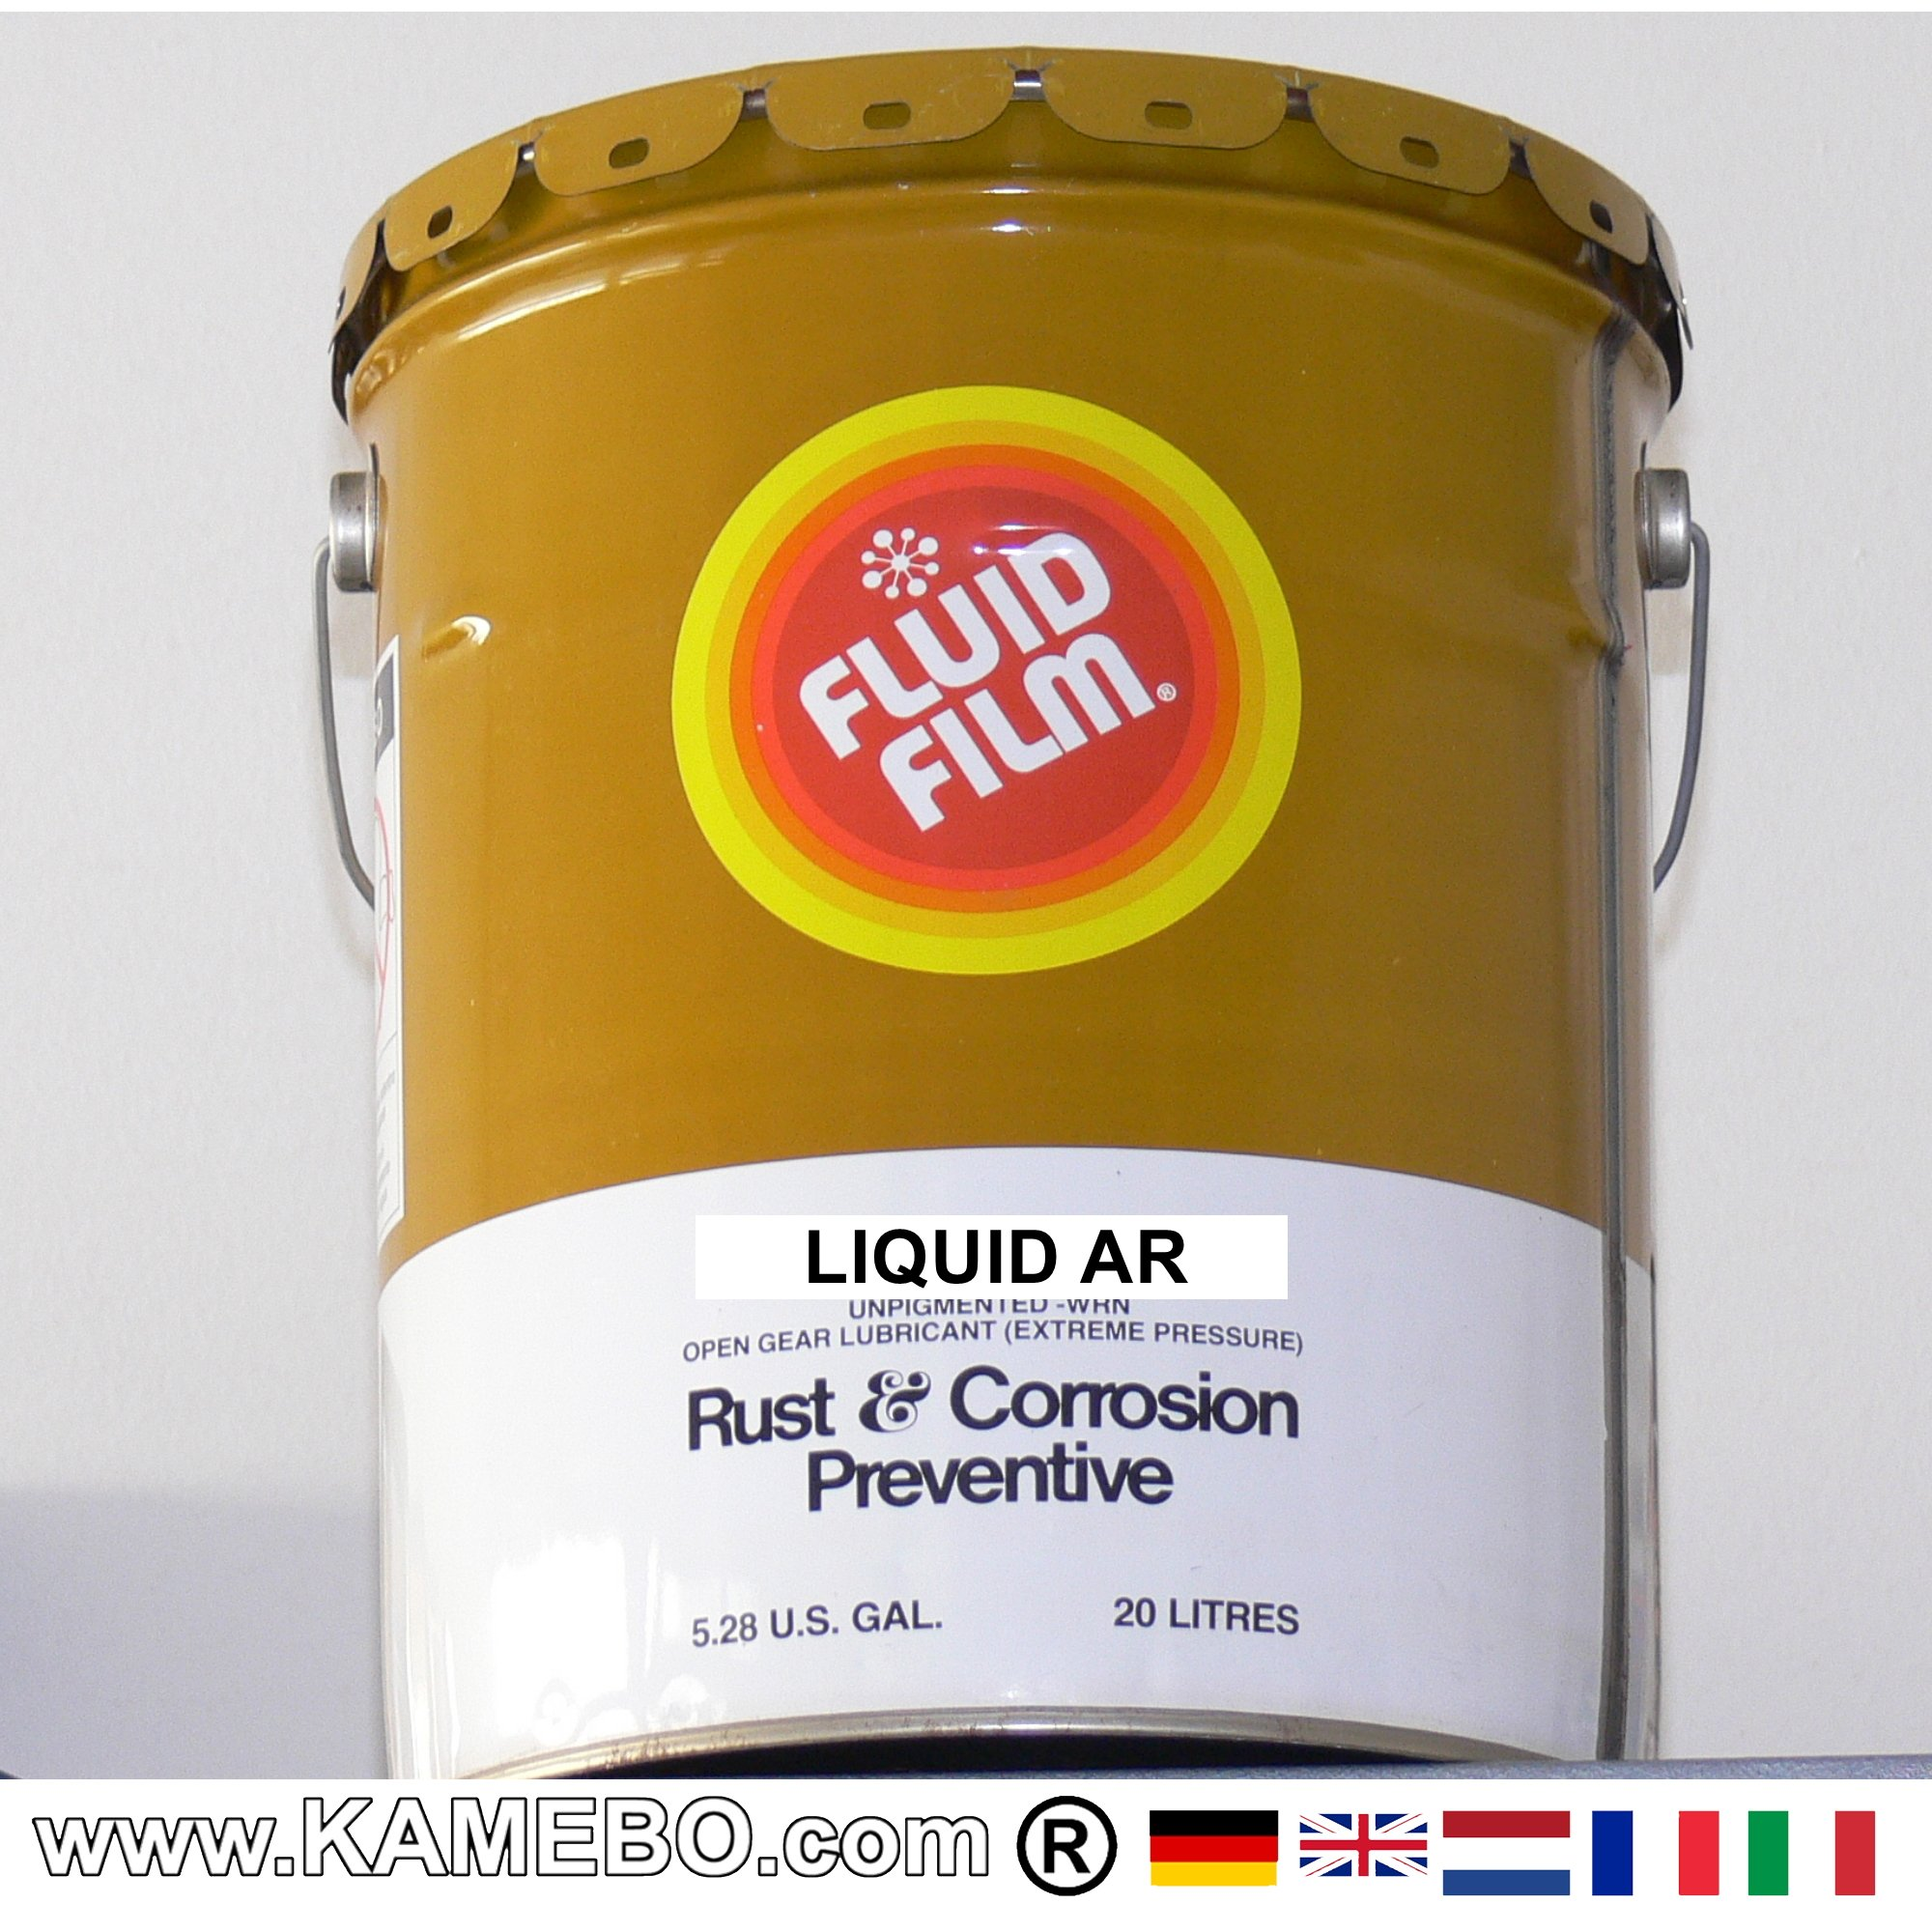 premium rust protection grease fluid film liquid ar kamebo. Black Bedroom Furniture Sets. Home Design Ideas